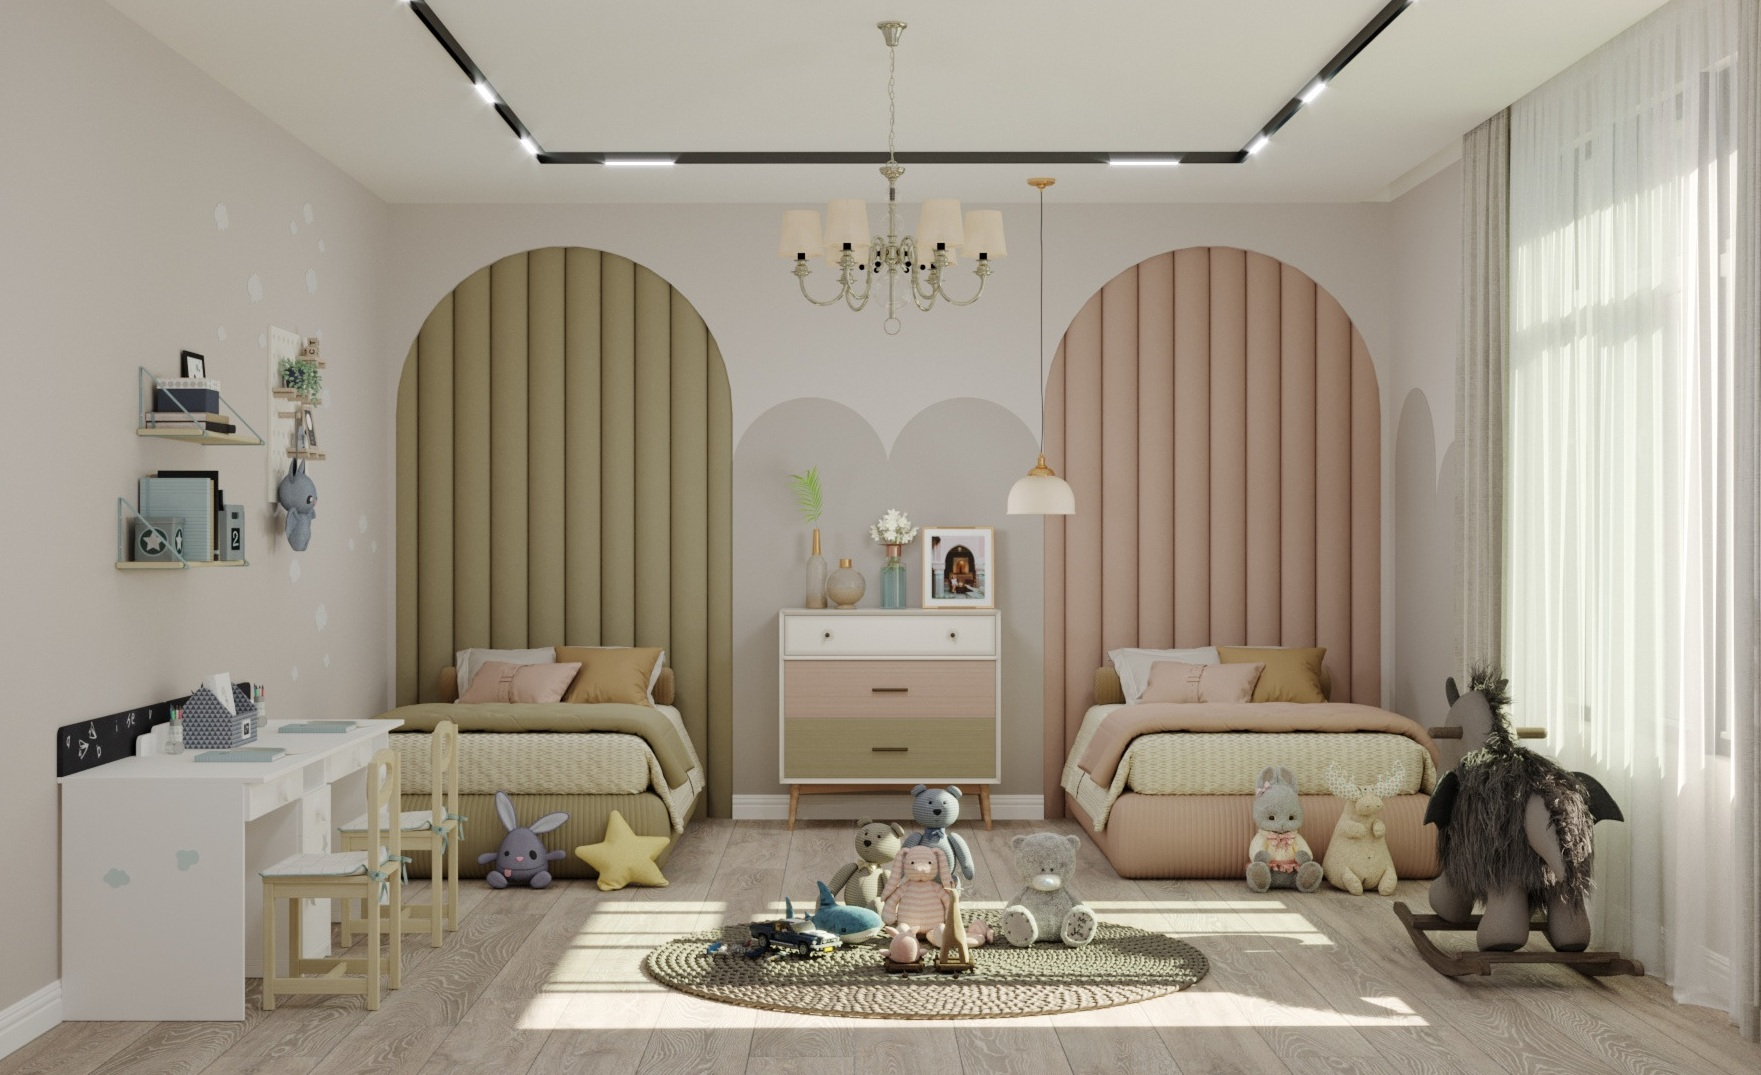 20 Best Kids Shared Bedroom Ideas That Your Kids Will Love